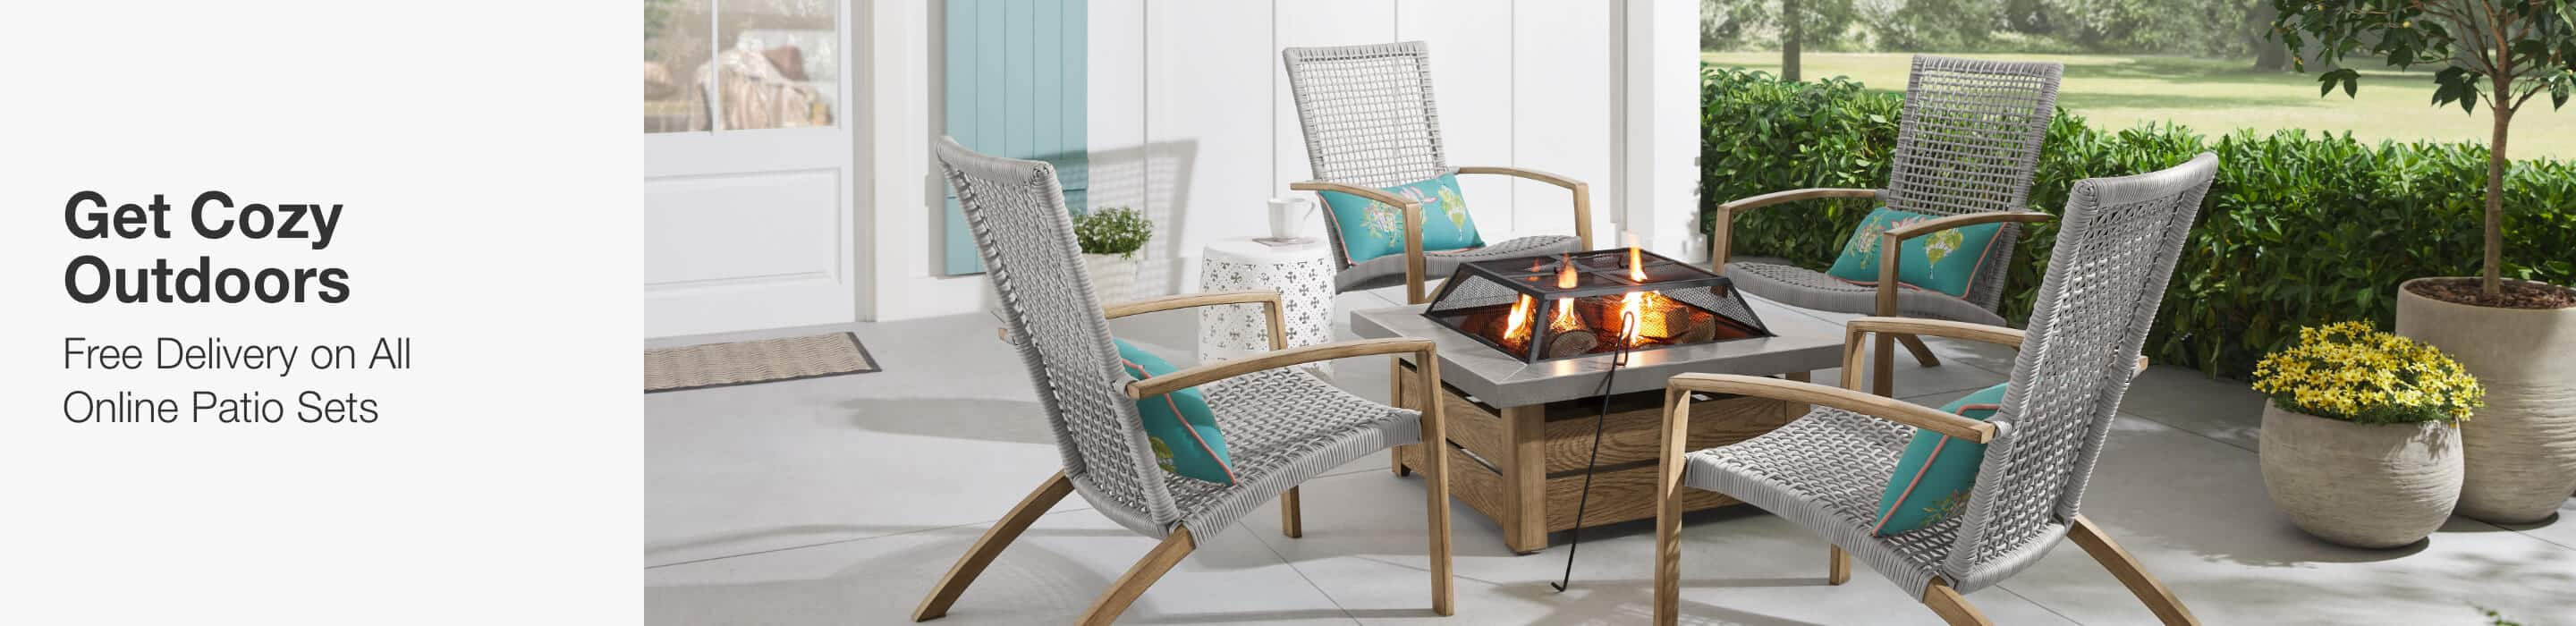 GET COZY OUTDOORS - Free Delivery on All Online Patio Sets